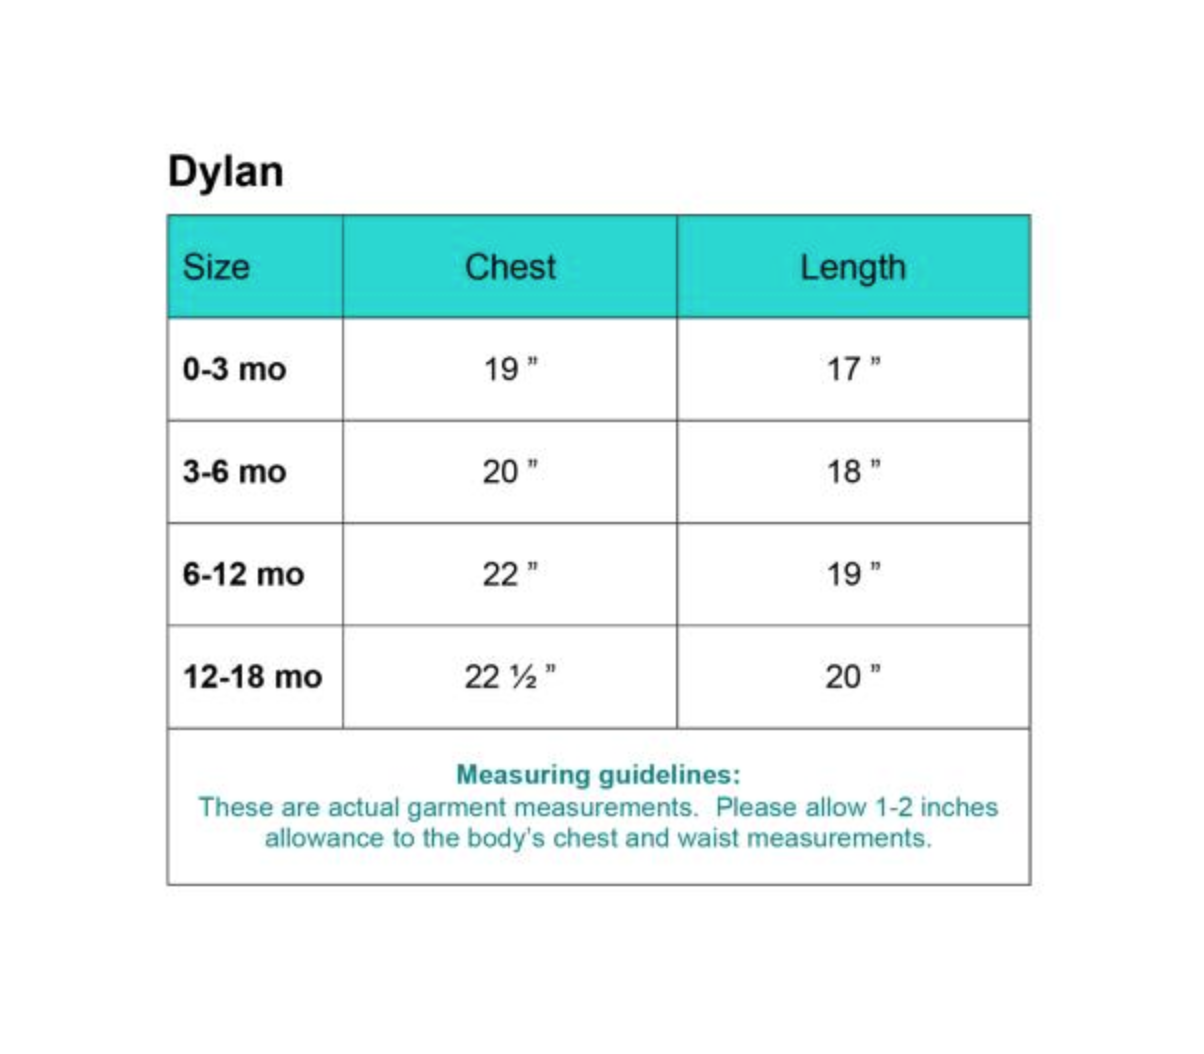 sizing-chart-dylan.png